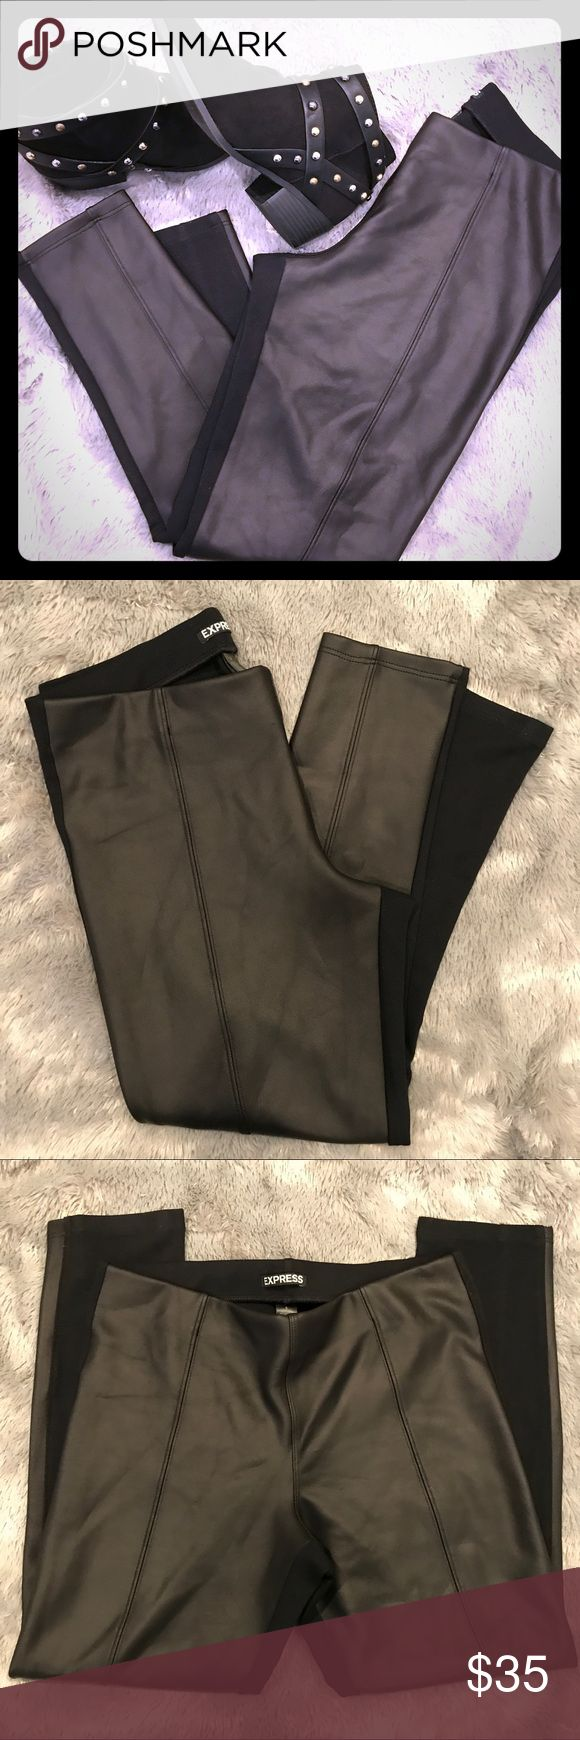 Express Black Faux Leather Panel Leggings Express Black Faux Leather Panel Leggings - Hemmed for someone who is 5'1 super cute leggings. I like them short to show my ankles when I wear heels. ❤️ Express Pants Leggings